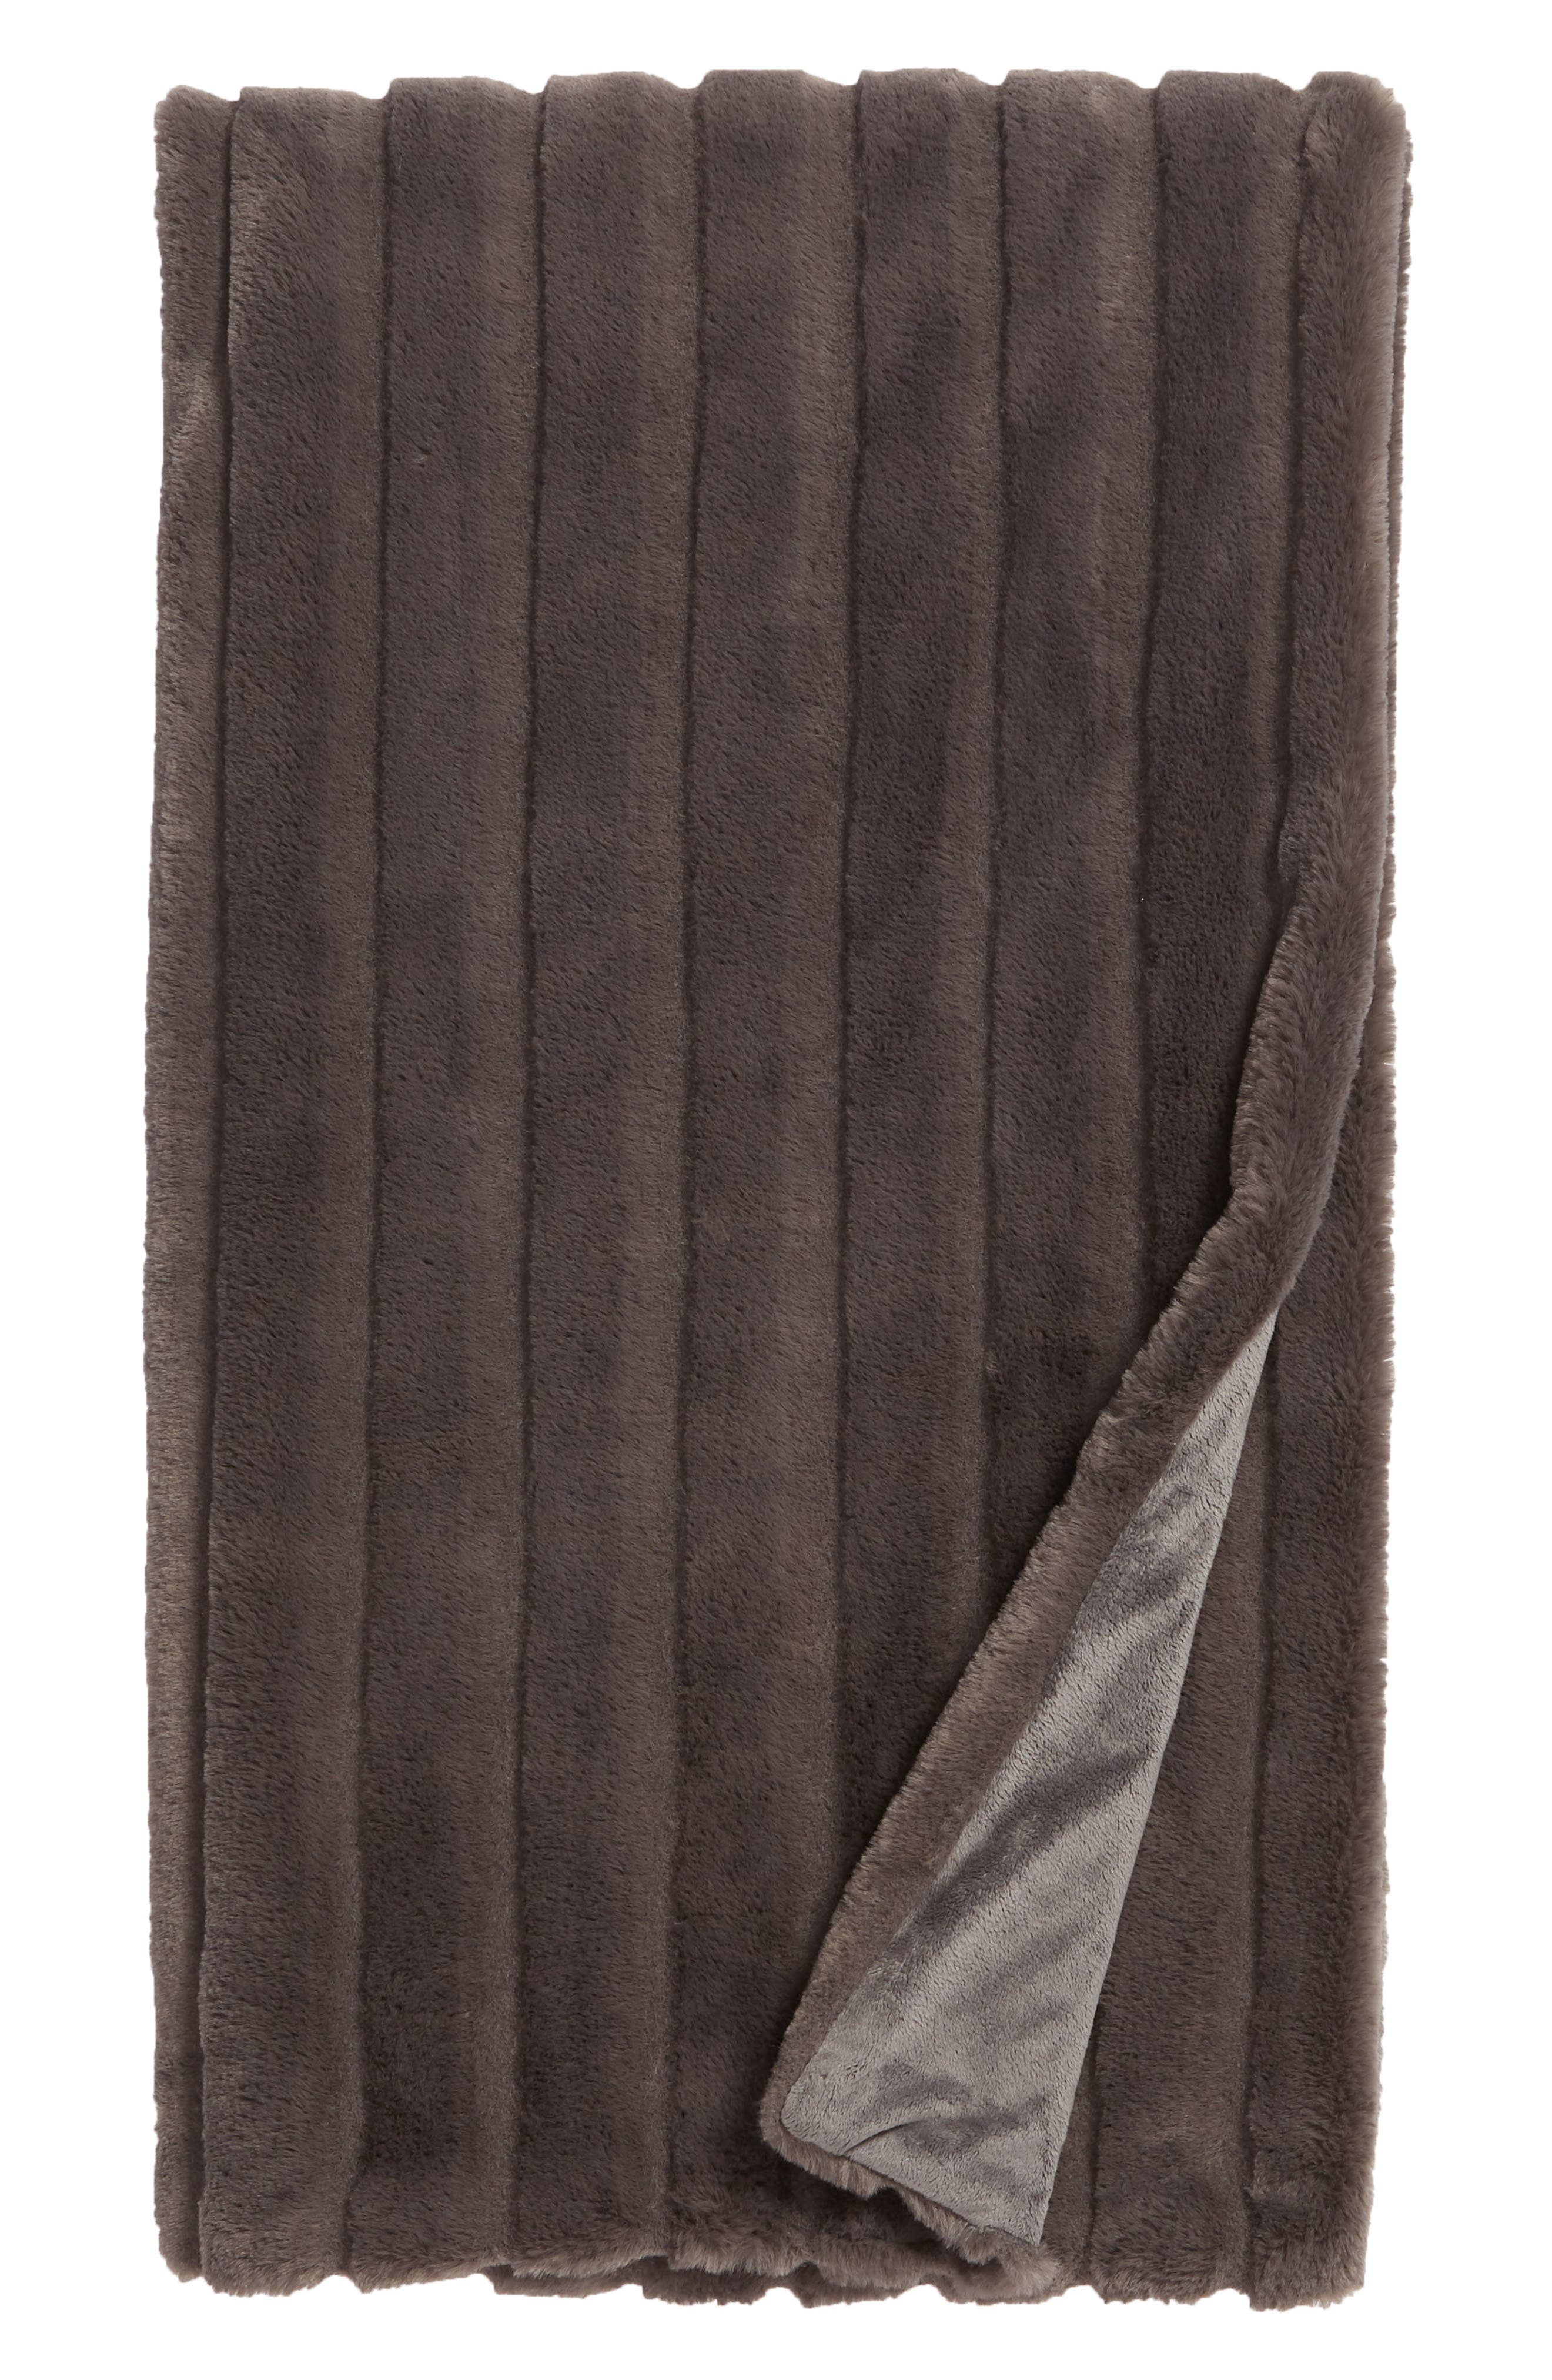 NORDSTROM AT HOME, Sheared Stripe Faux Fur Throw, Main thumbnail 1, color, GREY MAGNET